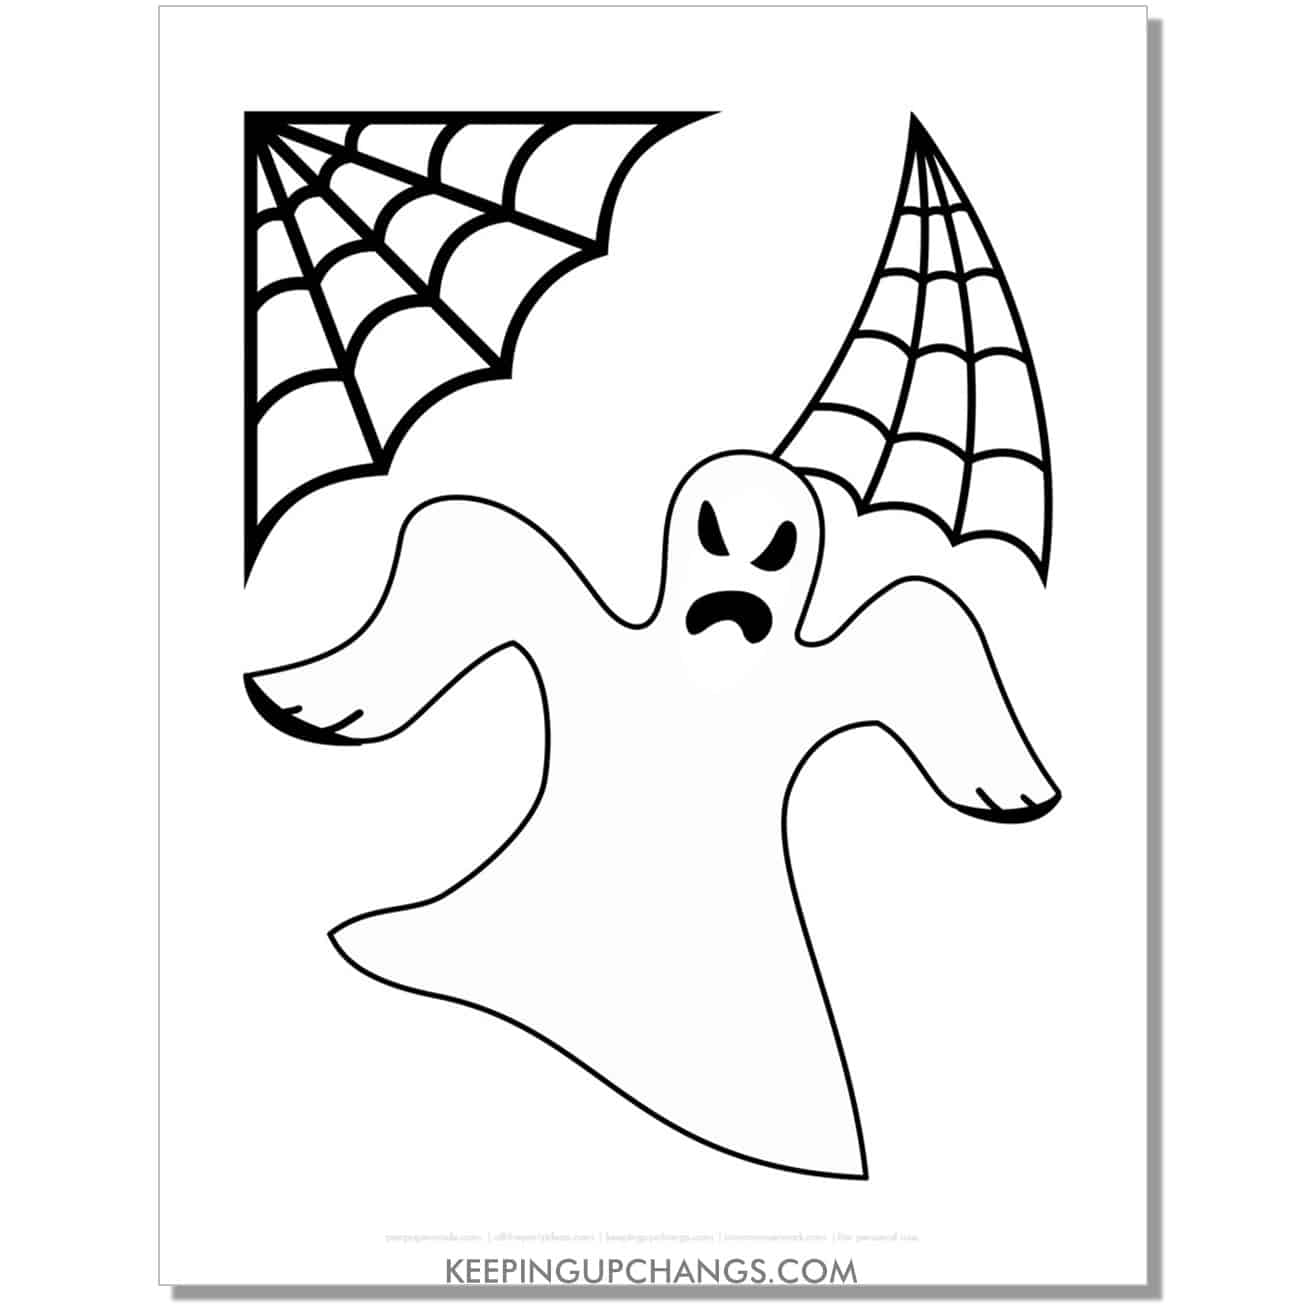 free simple scary ghost with cobwebs coloring page.